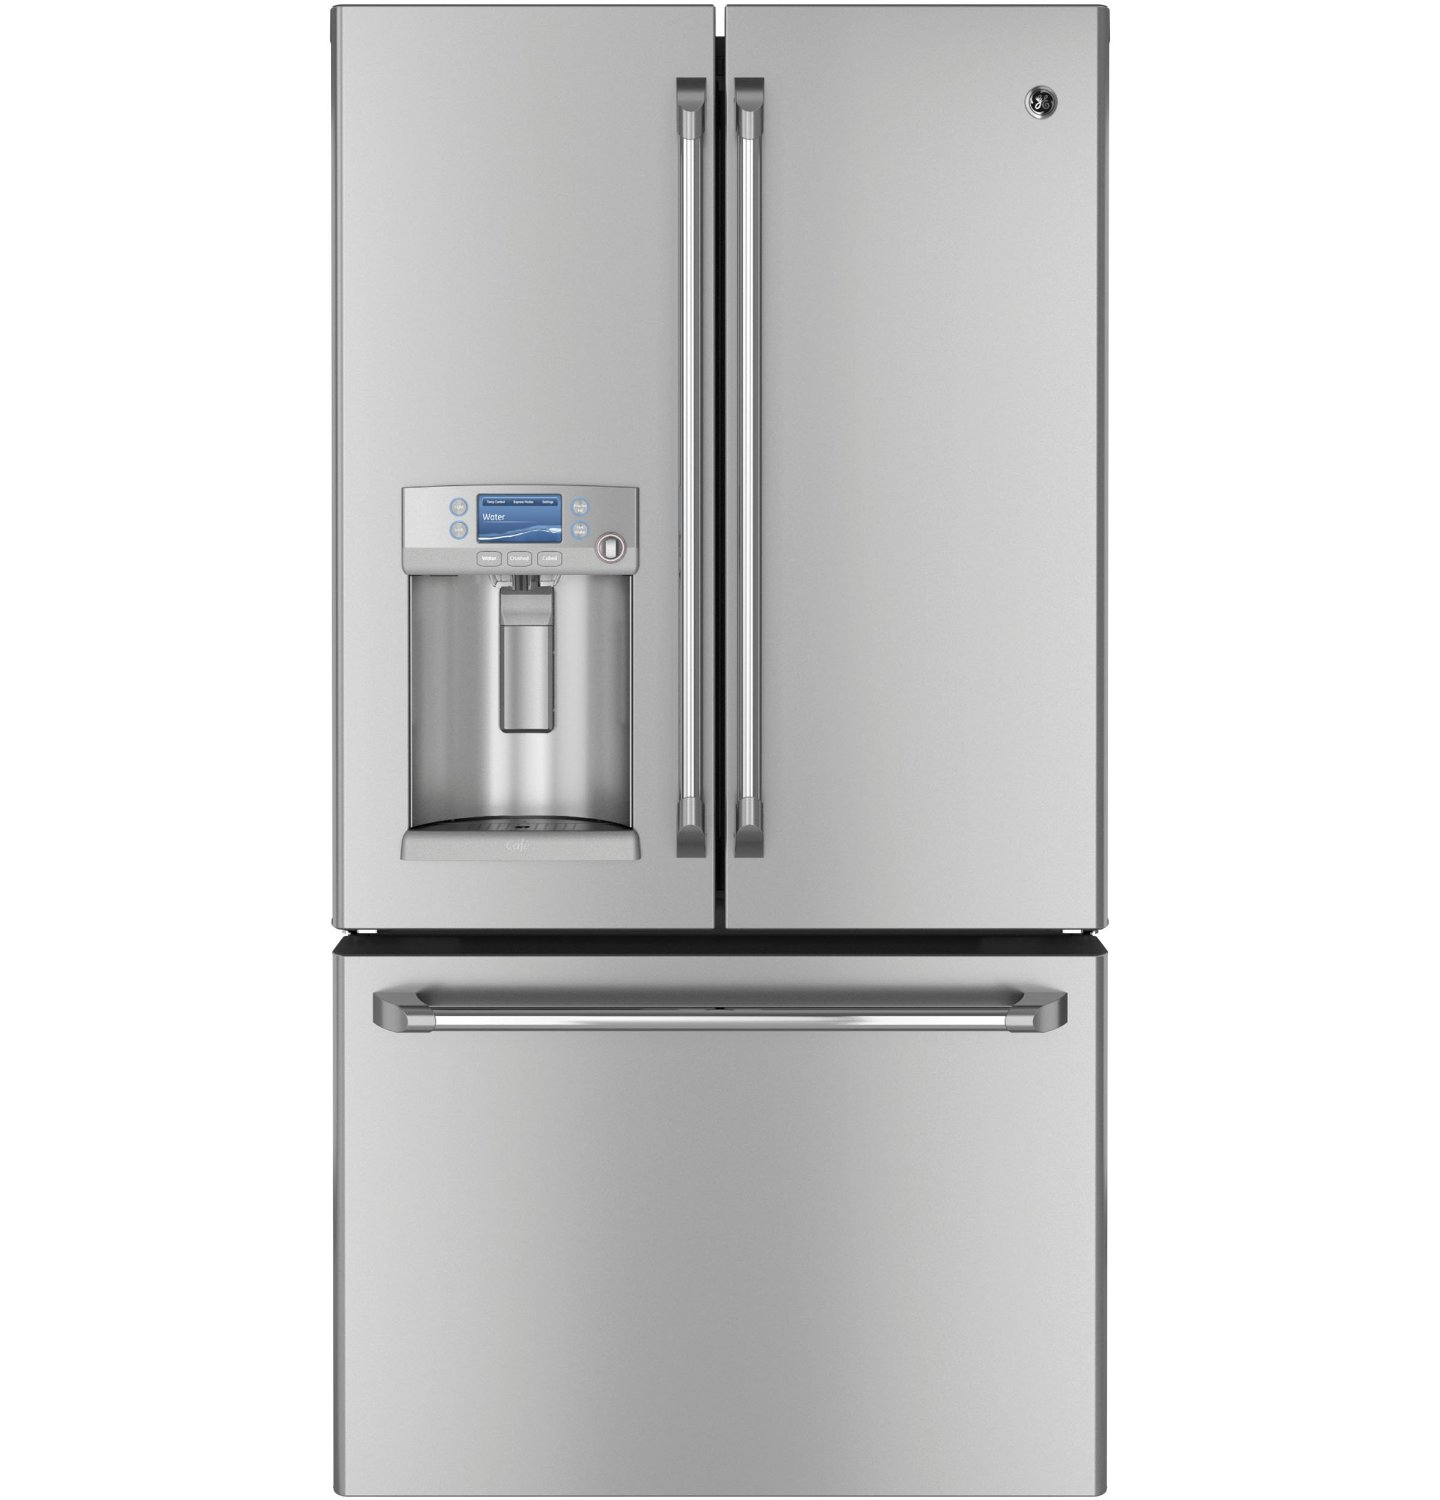 Counter Depth French Door Refrigerator Stainless GE CYE23TSDSS Cafe 23.1 Cu. Ft. Stainless Steel Counter ...